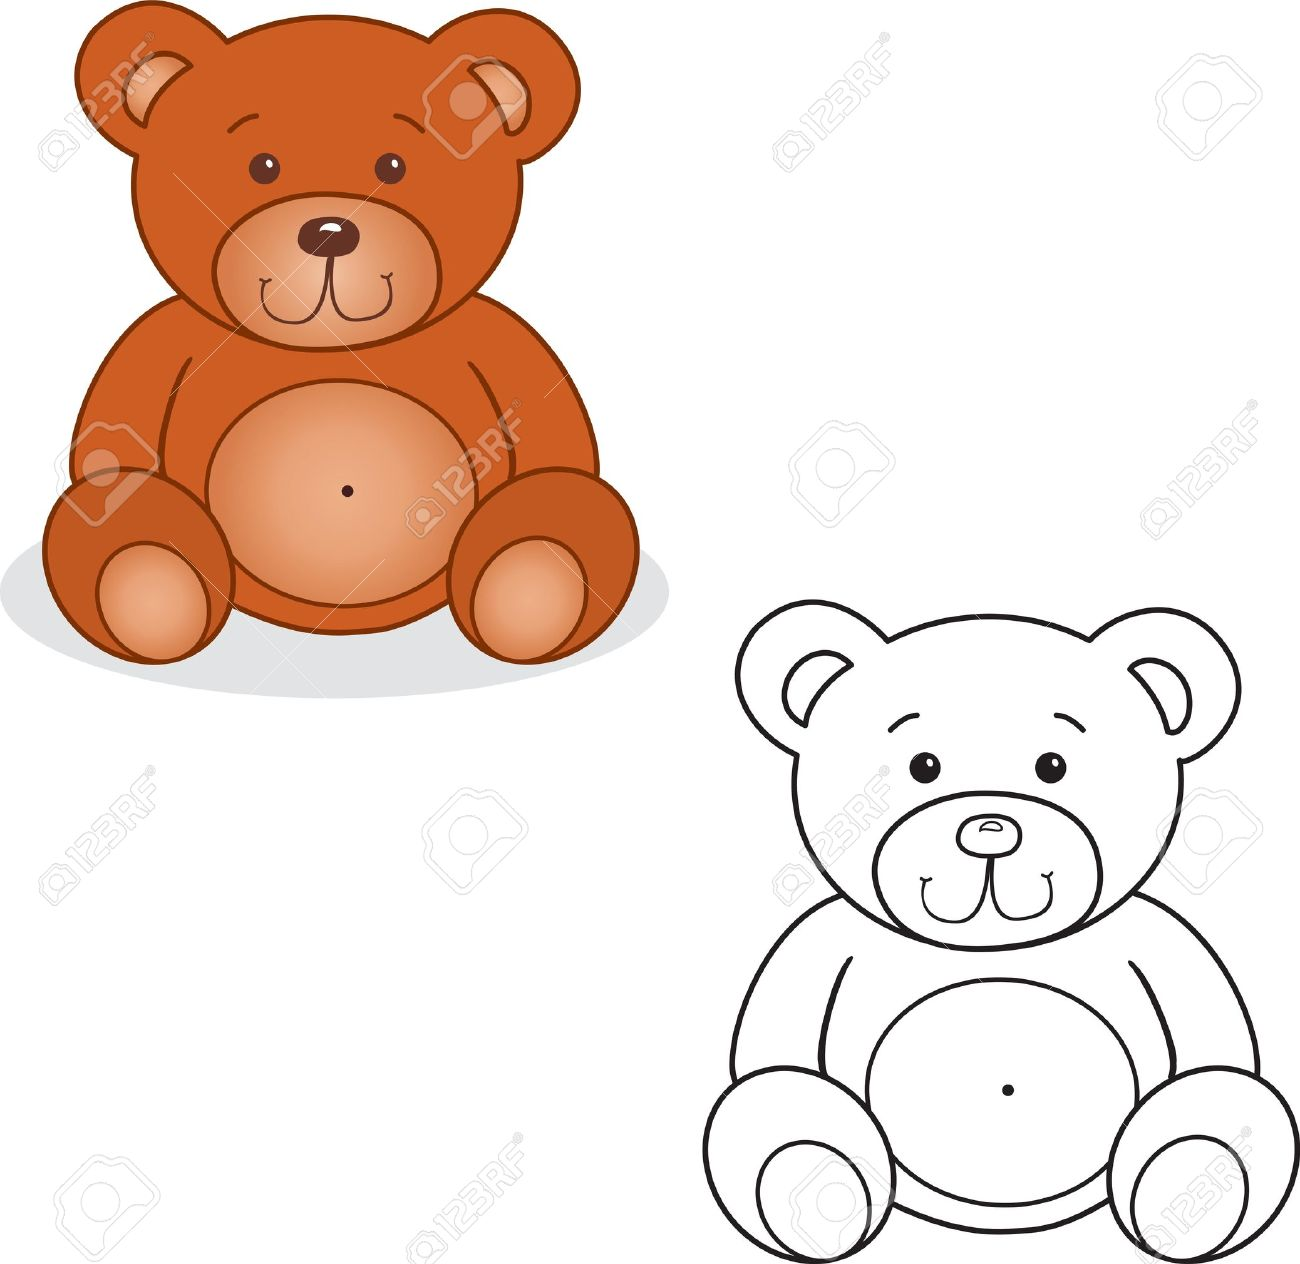 Coloring Book Bear Toy Vector Illustration Isolated On White Royalty